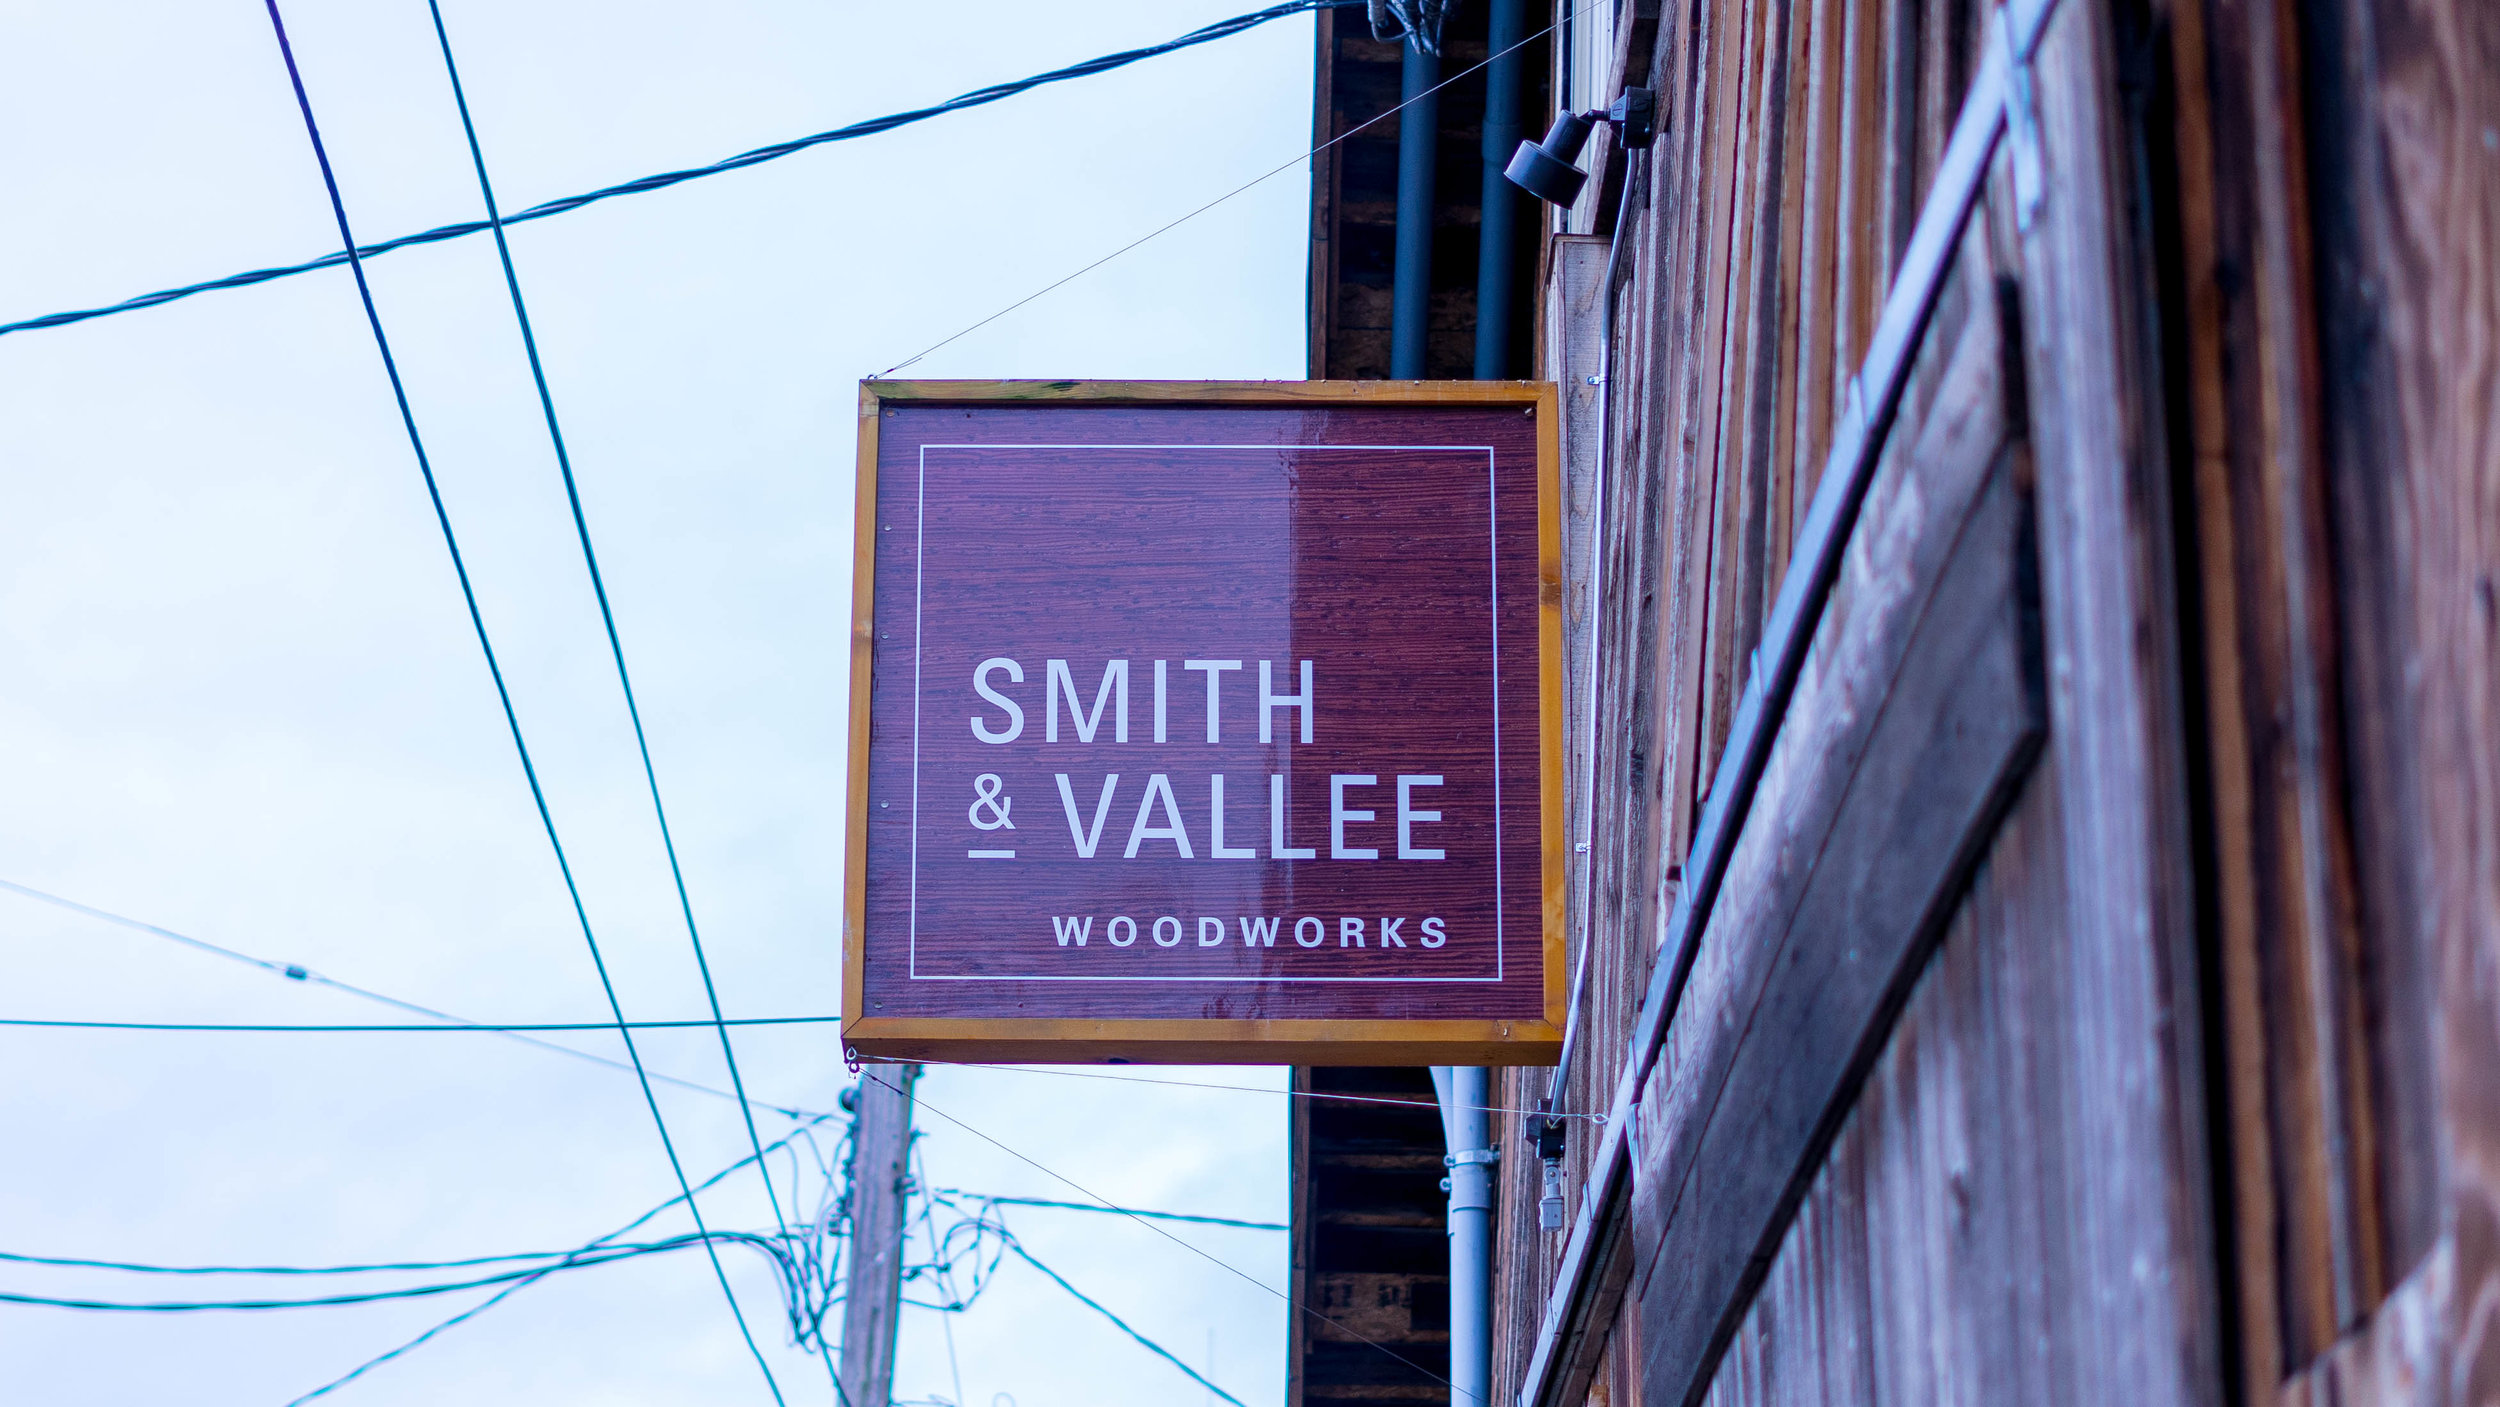 Smith & Vallee Woodworks located in Bow, Washington.